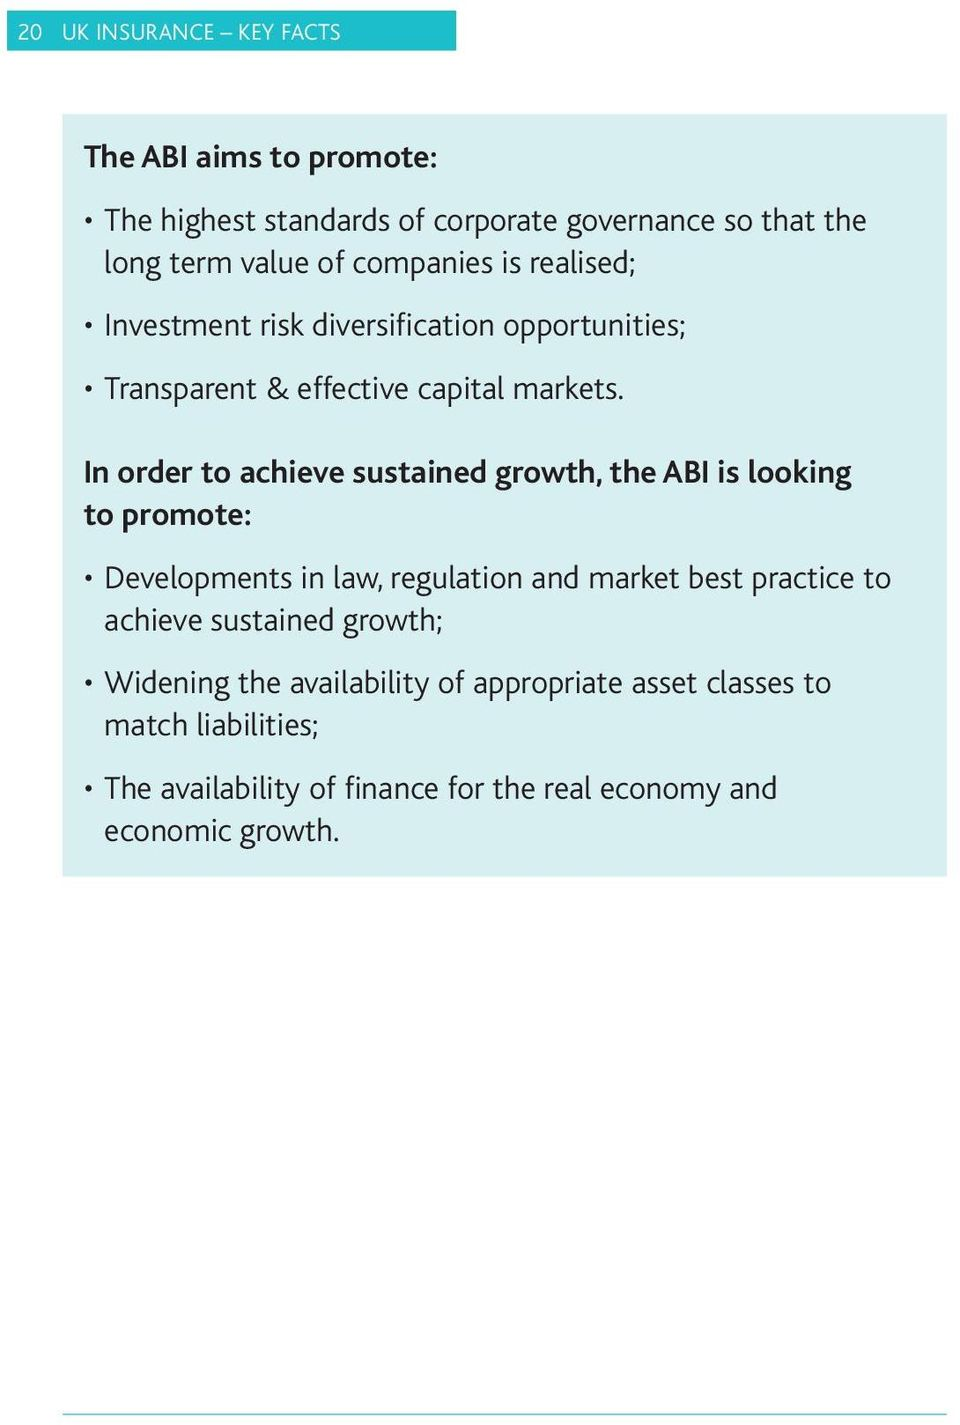 In order to achieve sustained growth, the ABI is looking to promote: Developments in law, regulation and market best practice to